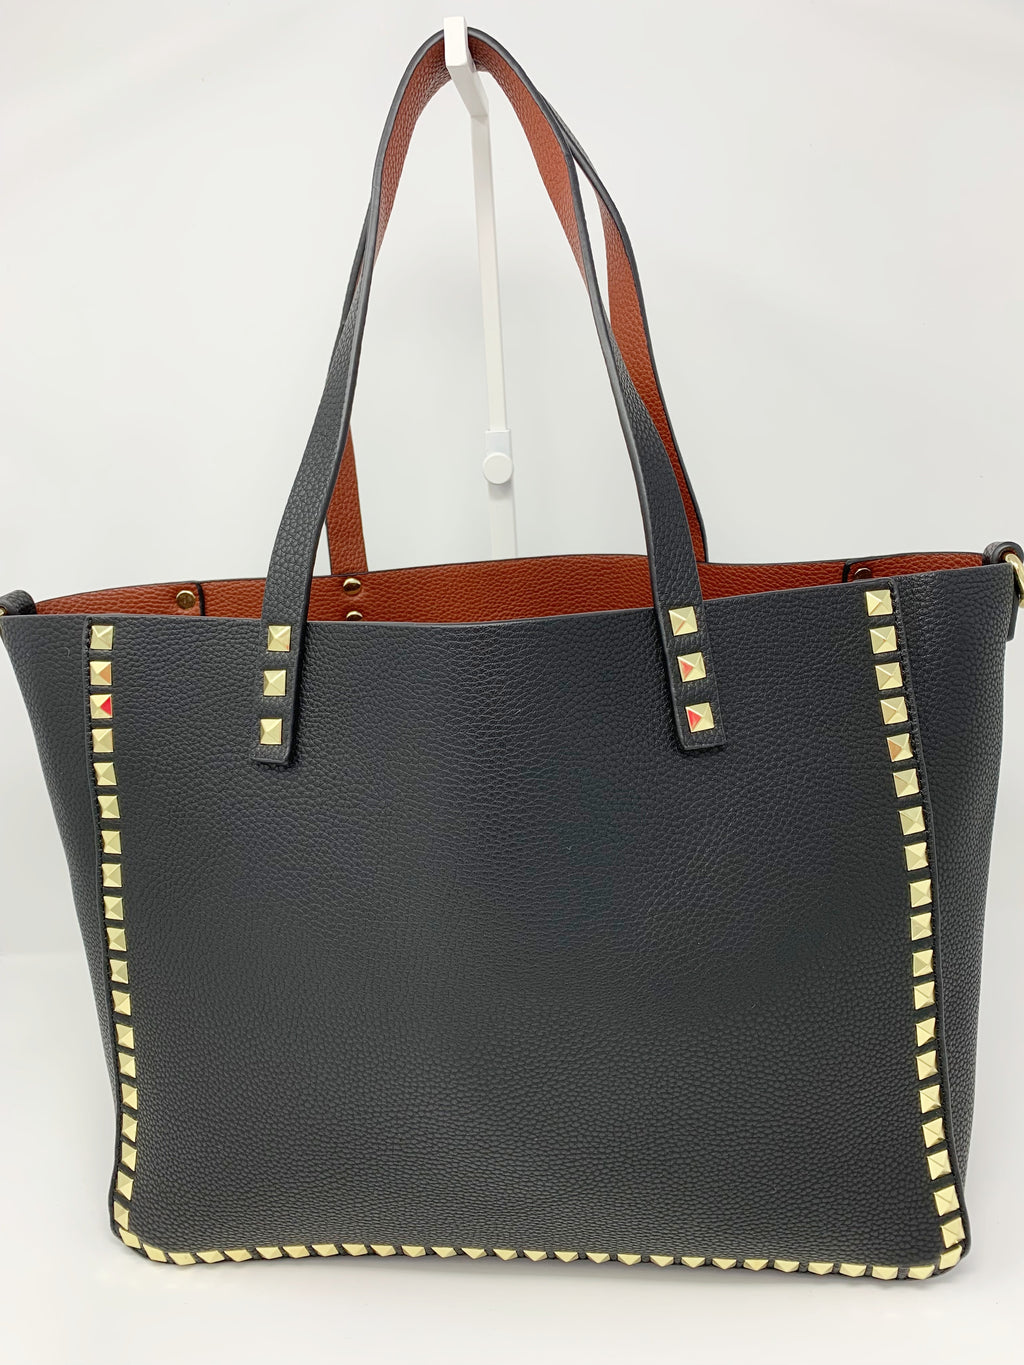 Large Studded Tote with Pouch in Black with Cognac